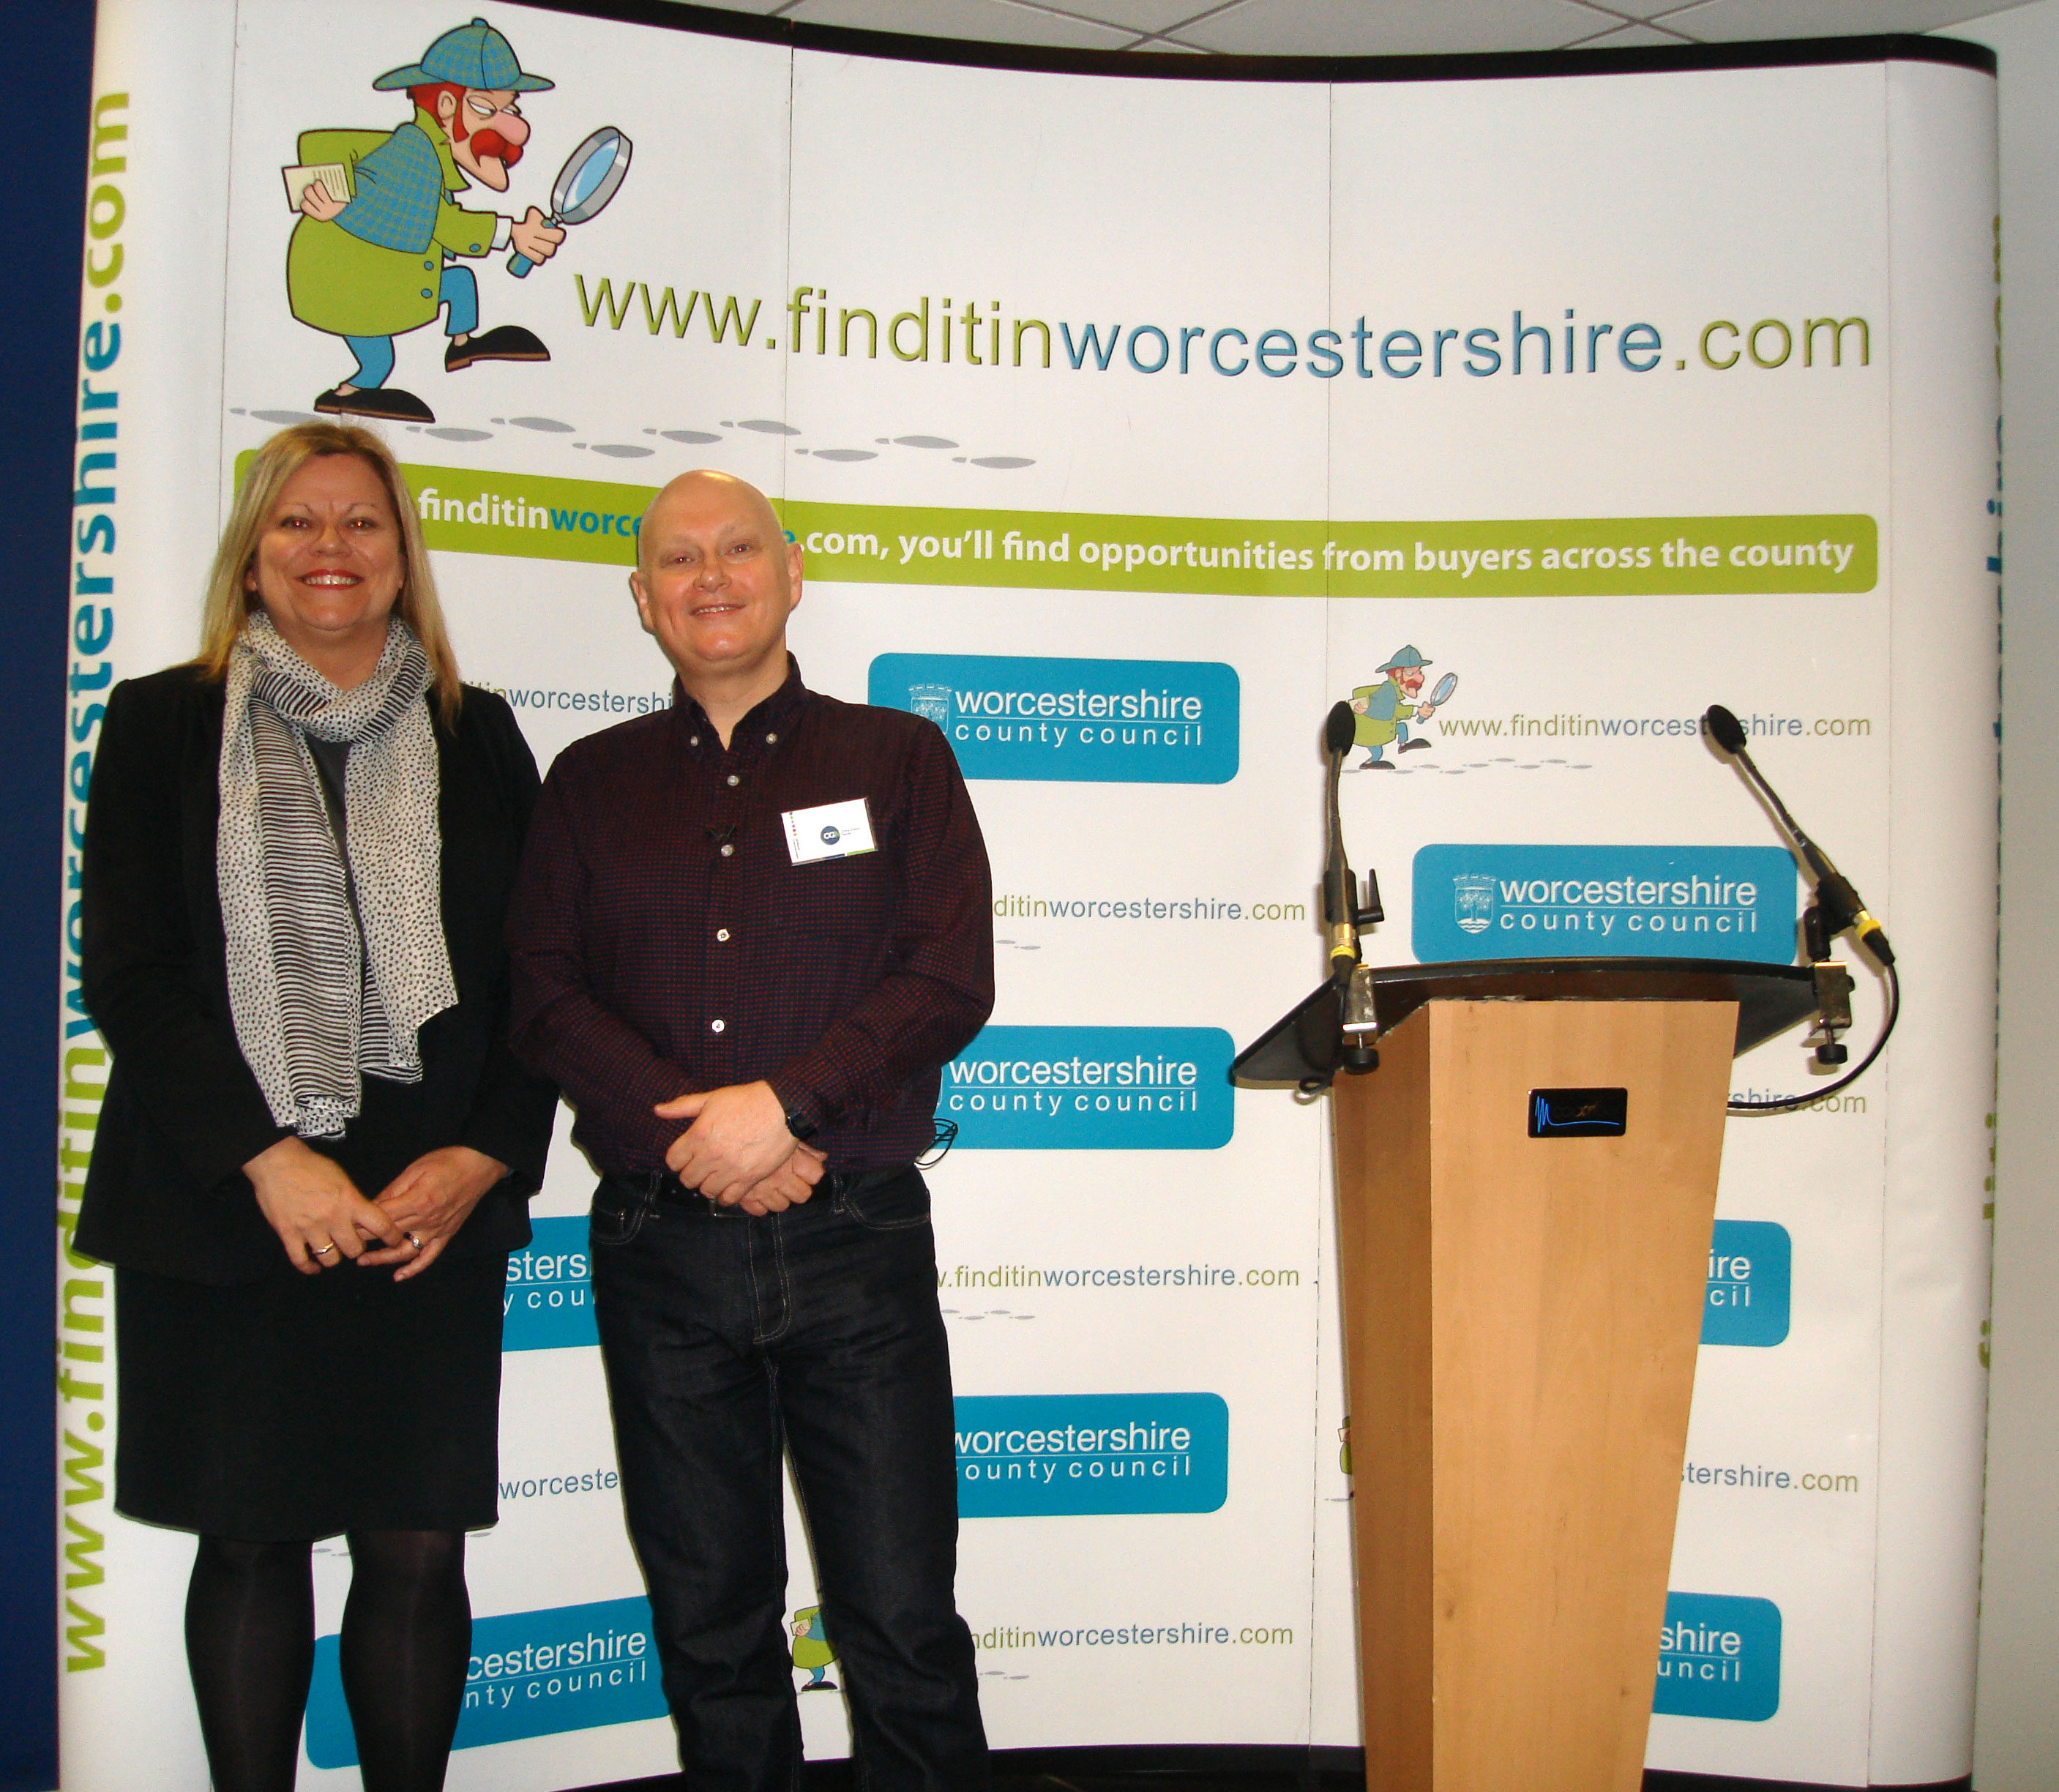 Sue Crow and Chris Green standing by the FinditinWorcestershire stand